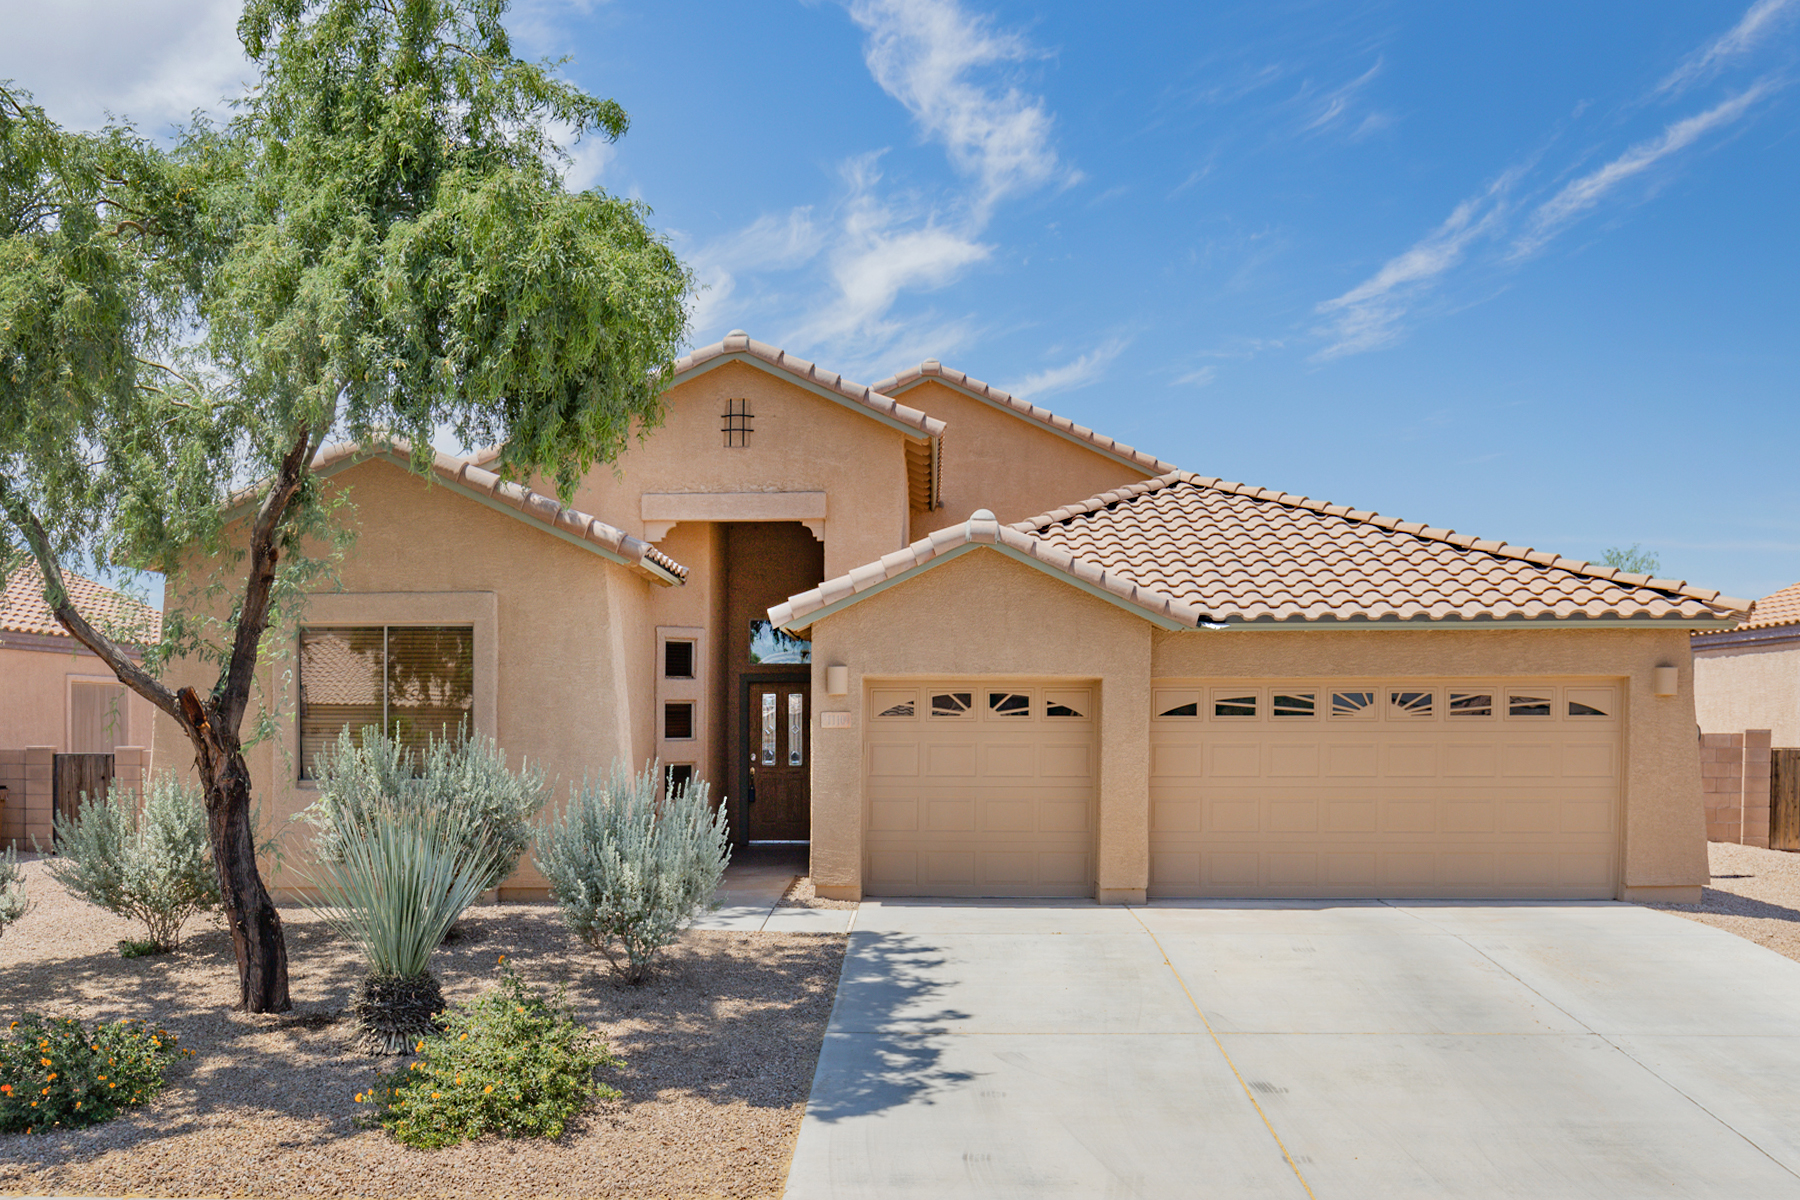 Single Family Homes for Sale at Welcome Home to Gladden Farms 11109 W. Caracara Drive Marana, Arizona 85653 United States